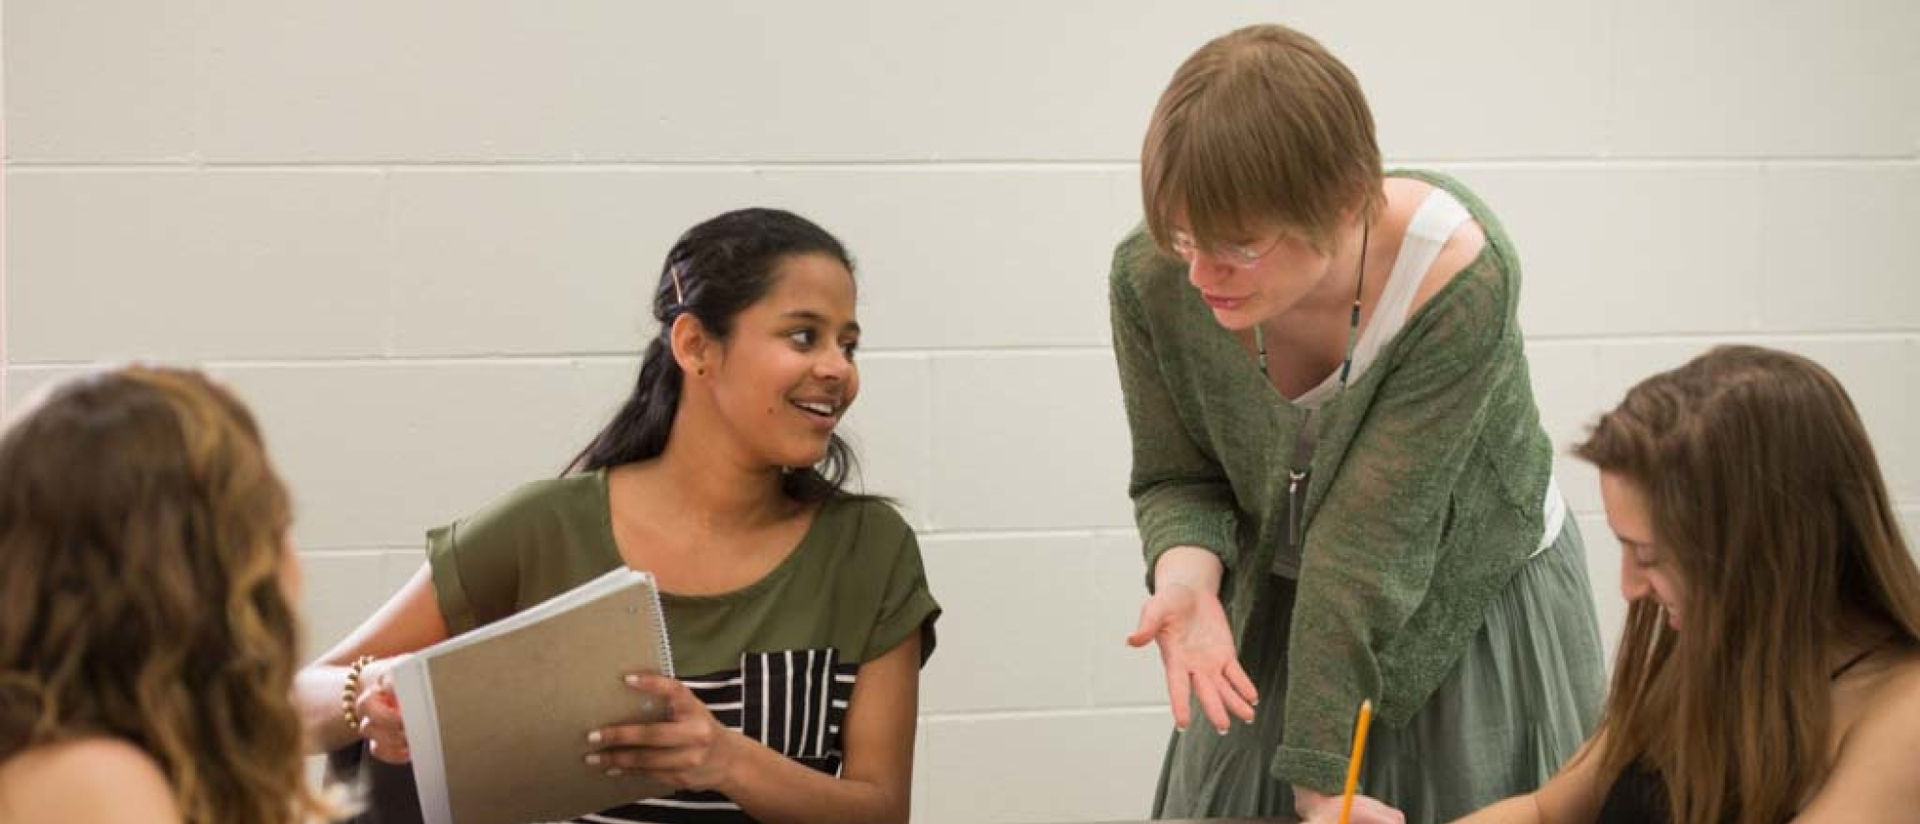 A professor and student work together.